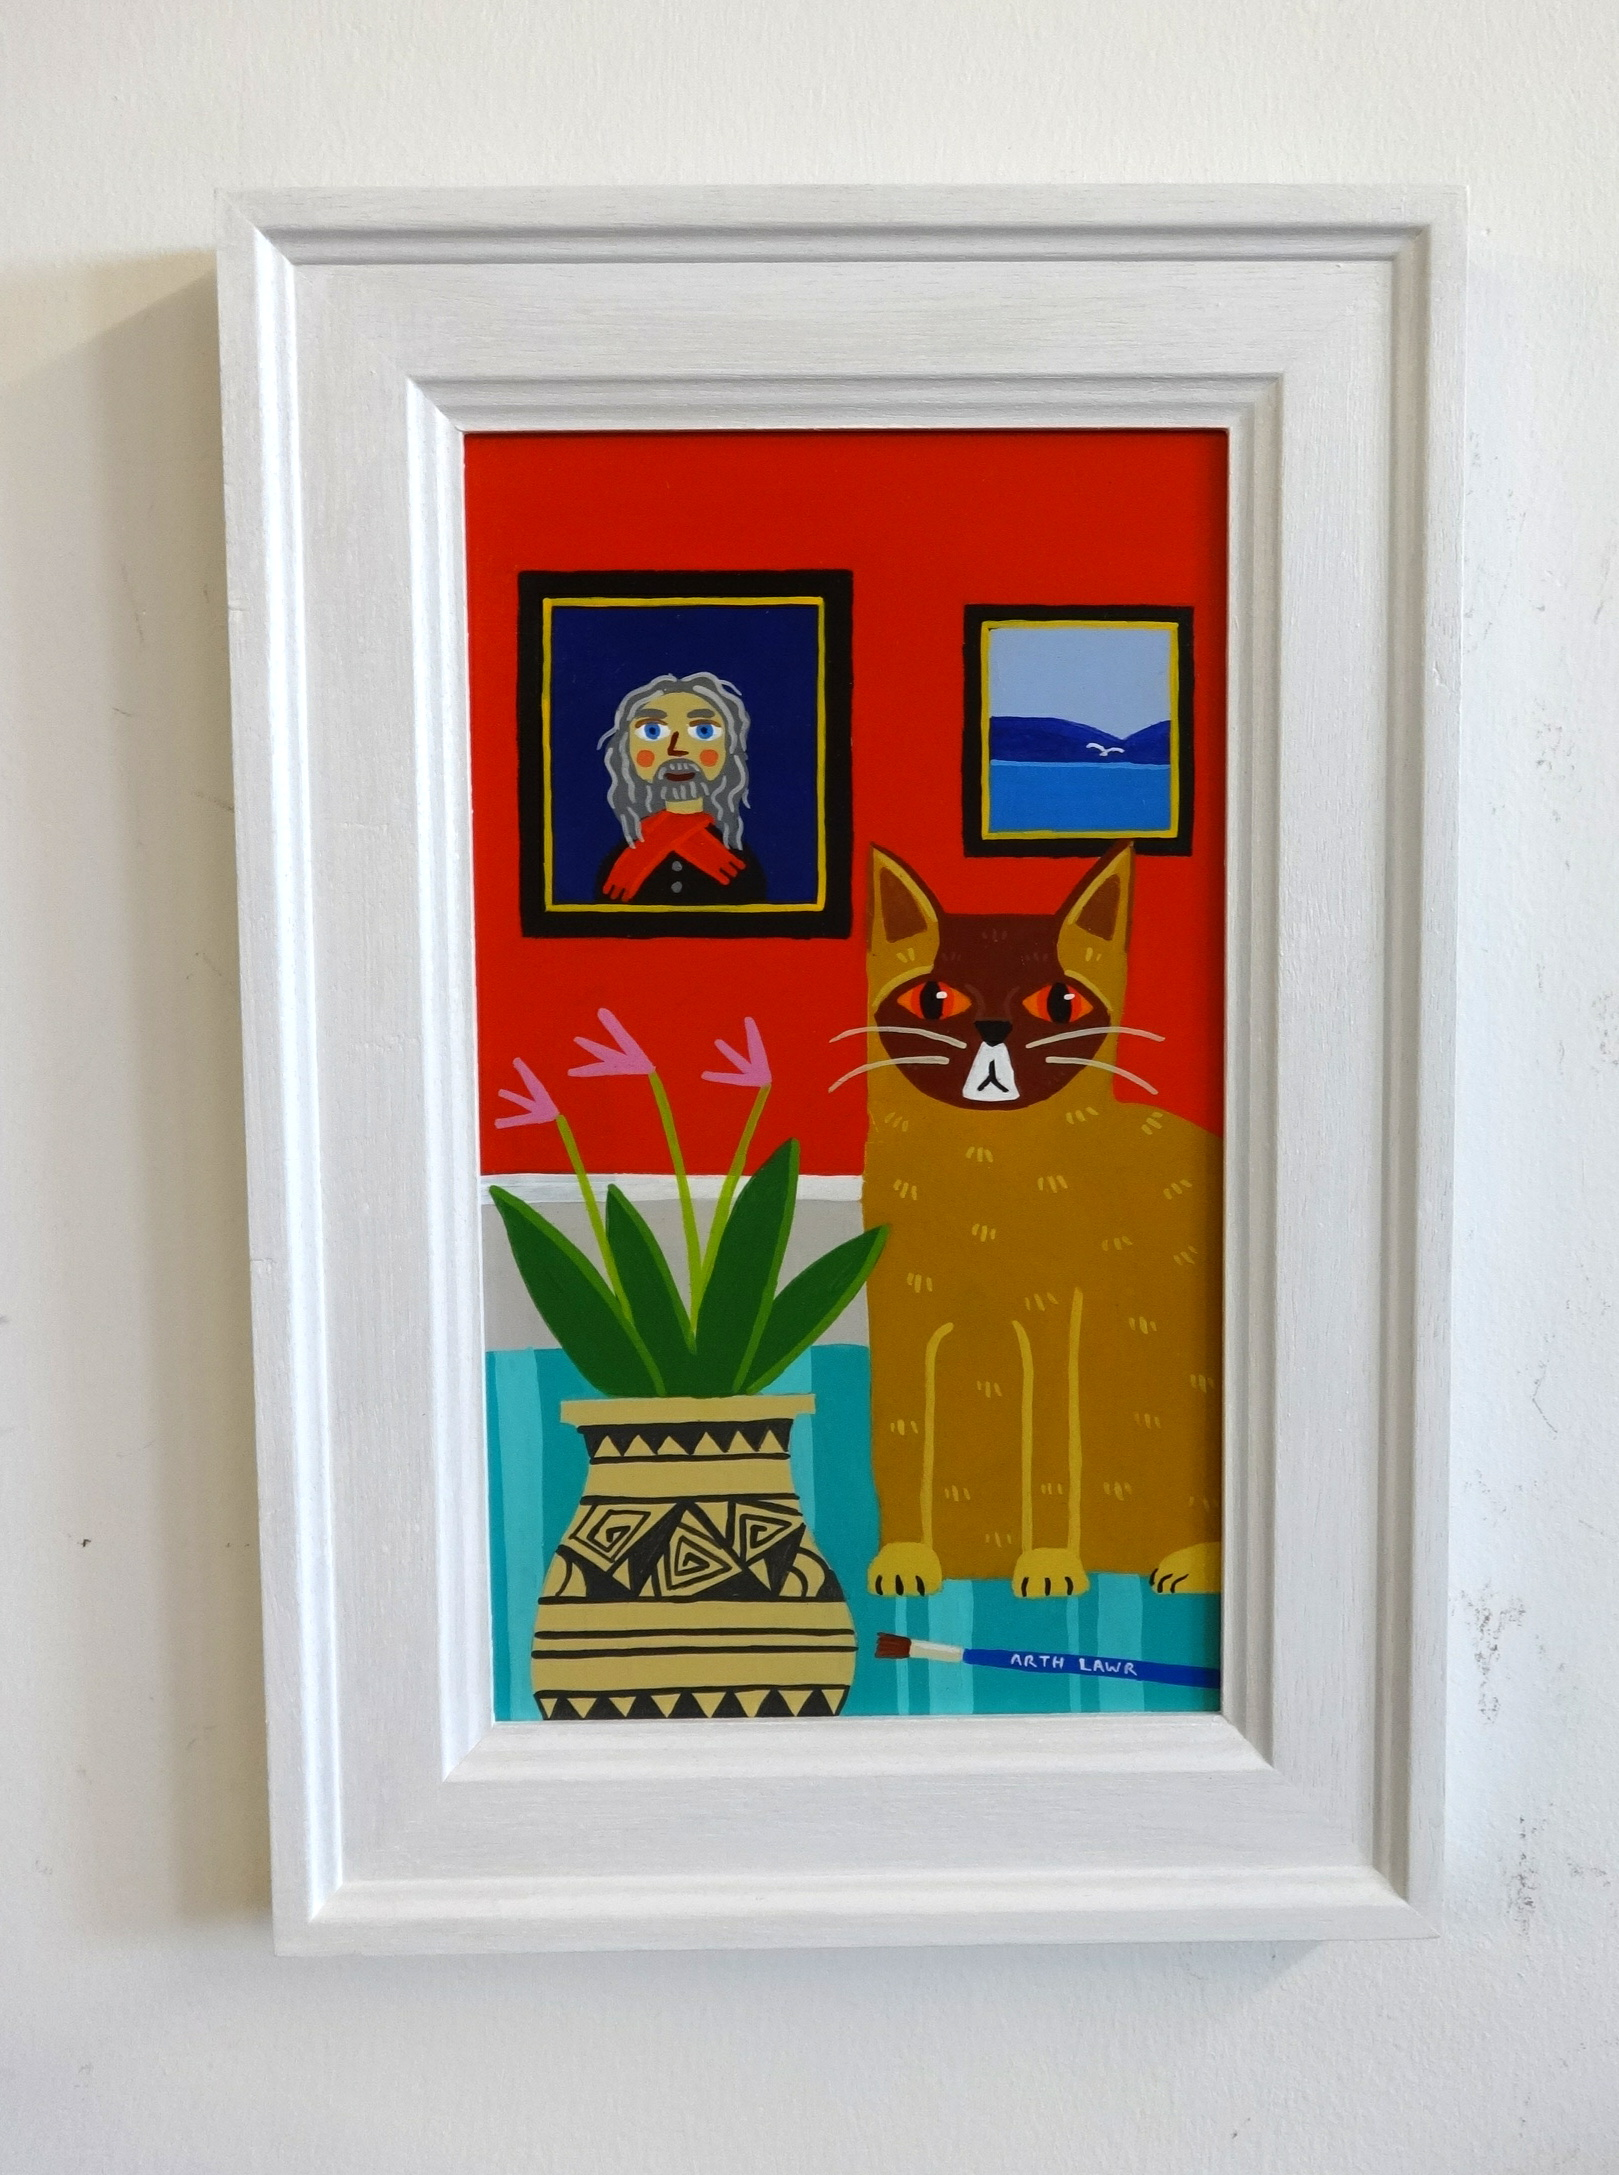 Lot 004 - Arthr Lawr (Member of the British Society of Naive Artists) acrylic on board, 'A cat and Lenkiewicz,